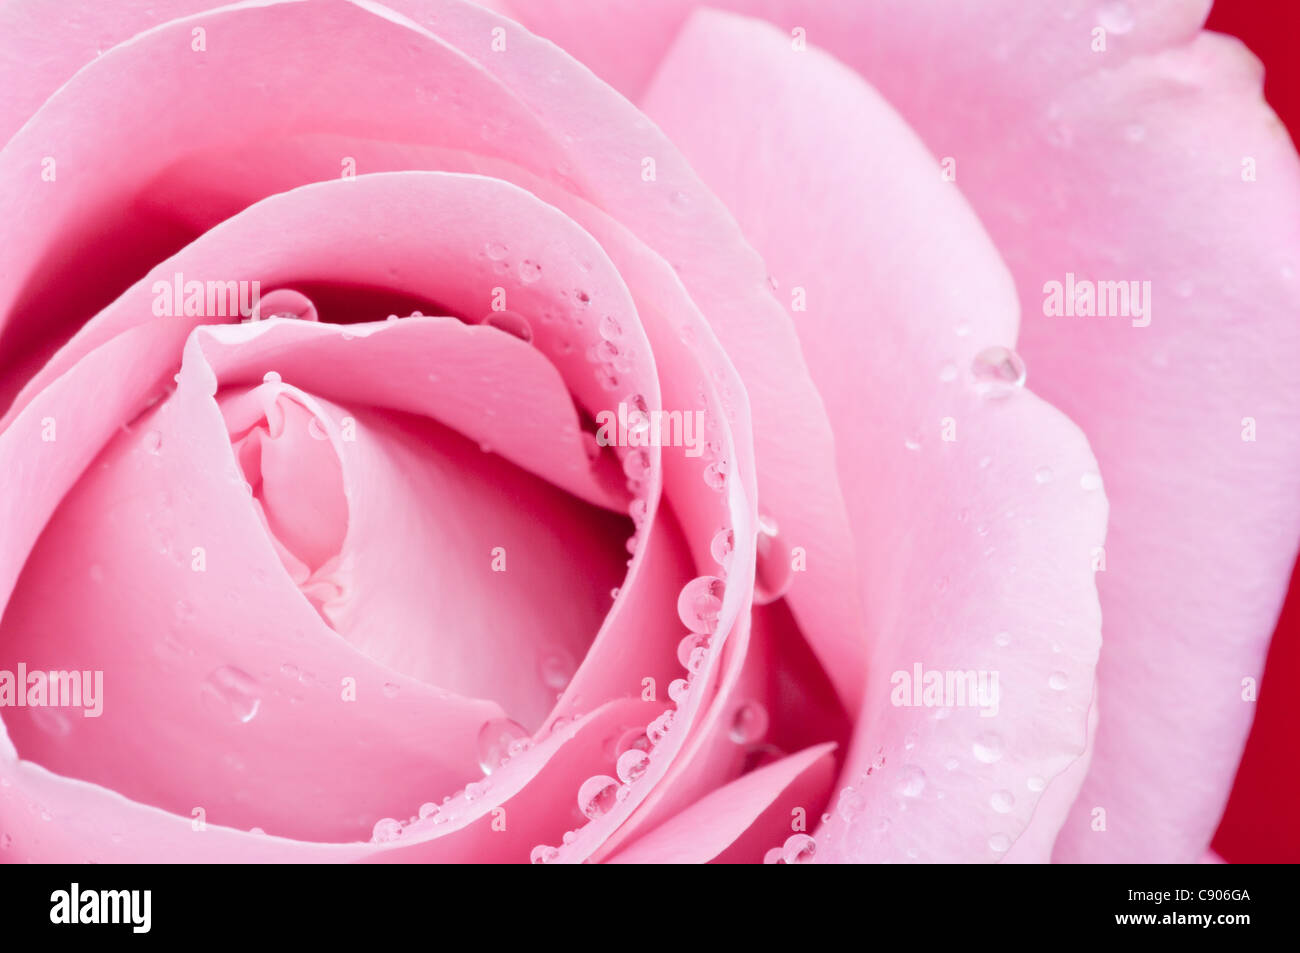 Pink rose with water droplets. - Stock Image